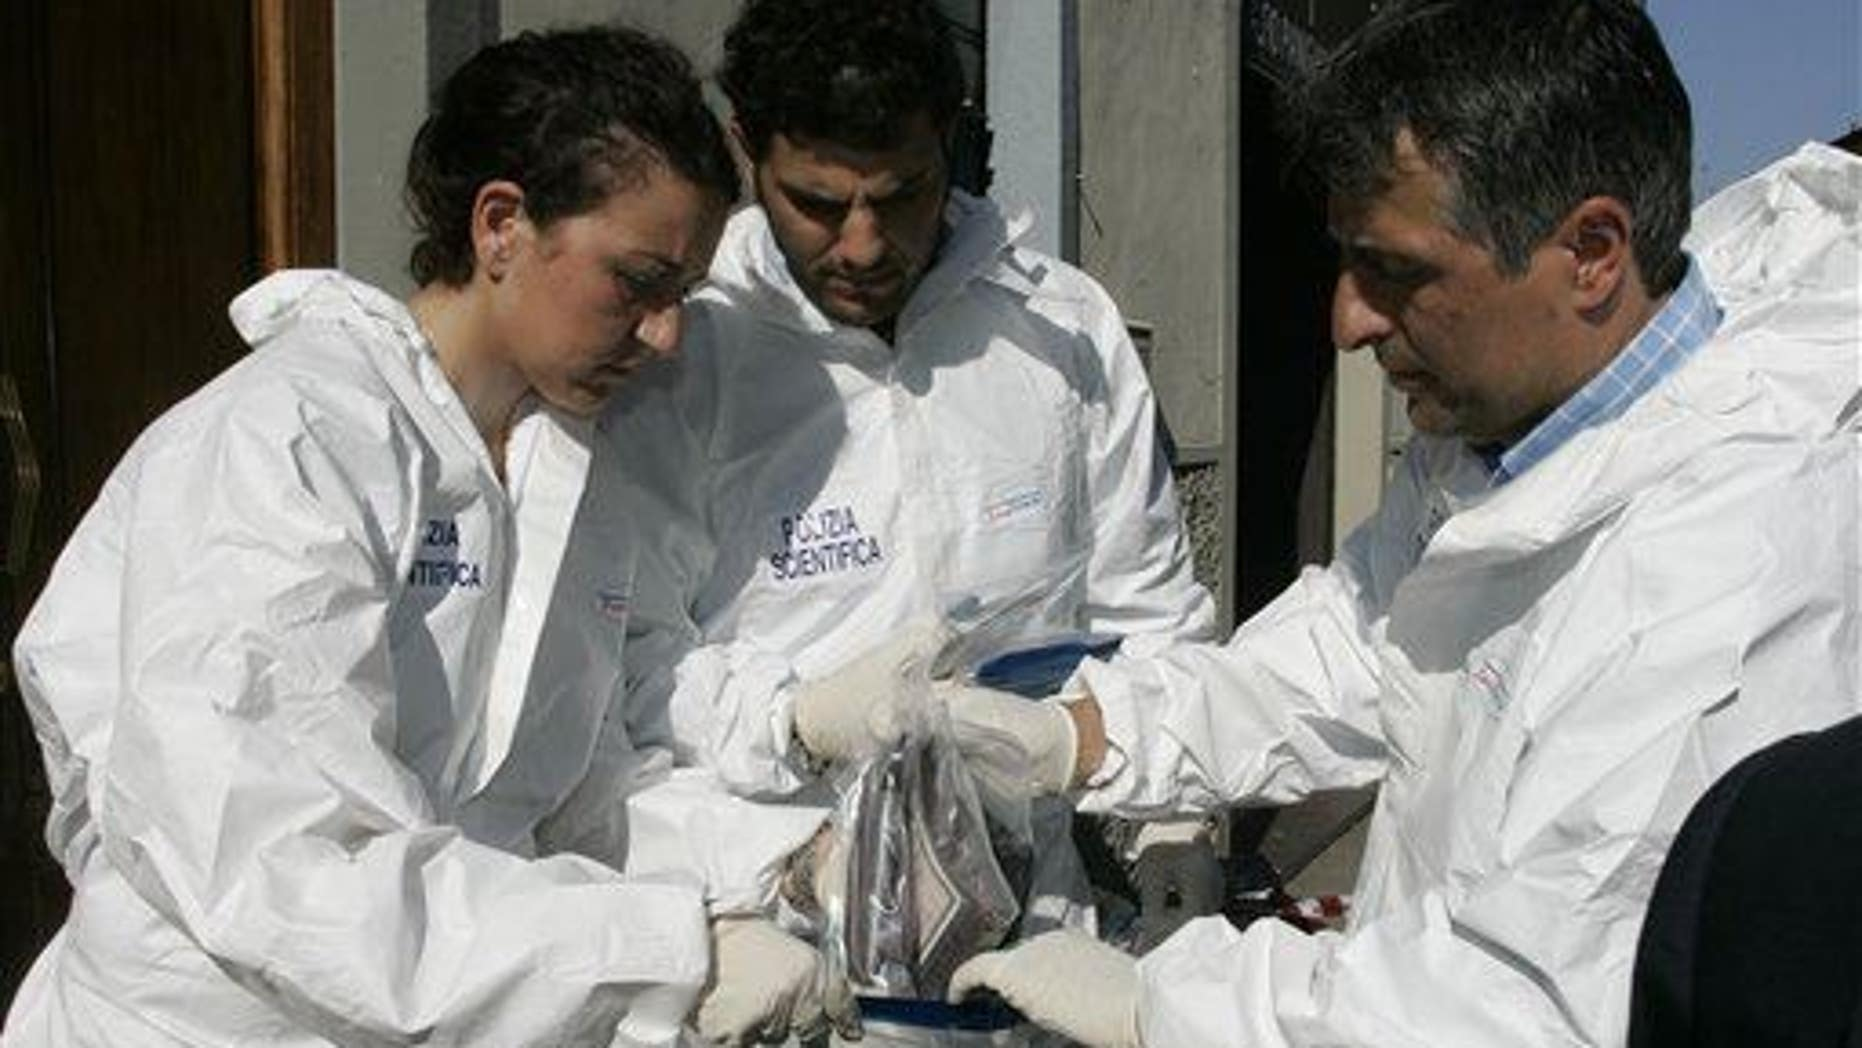 Forensic police officers are shown.